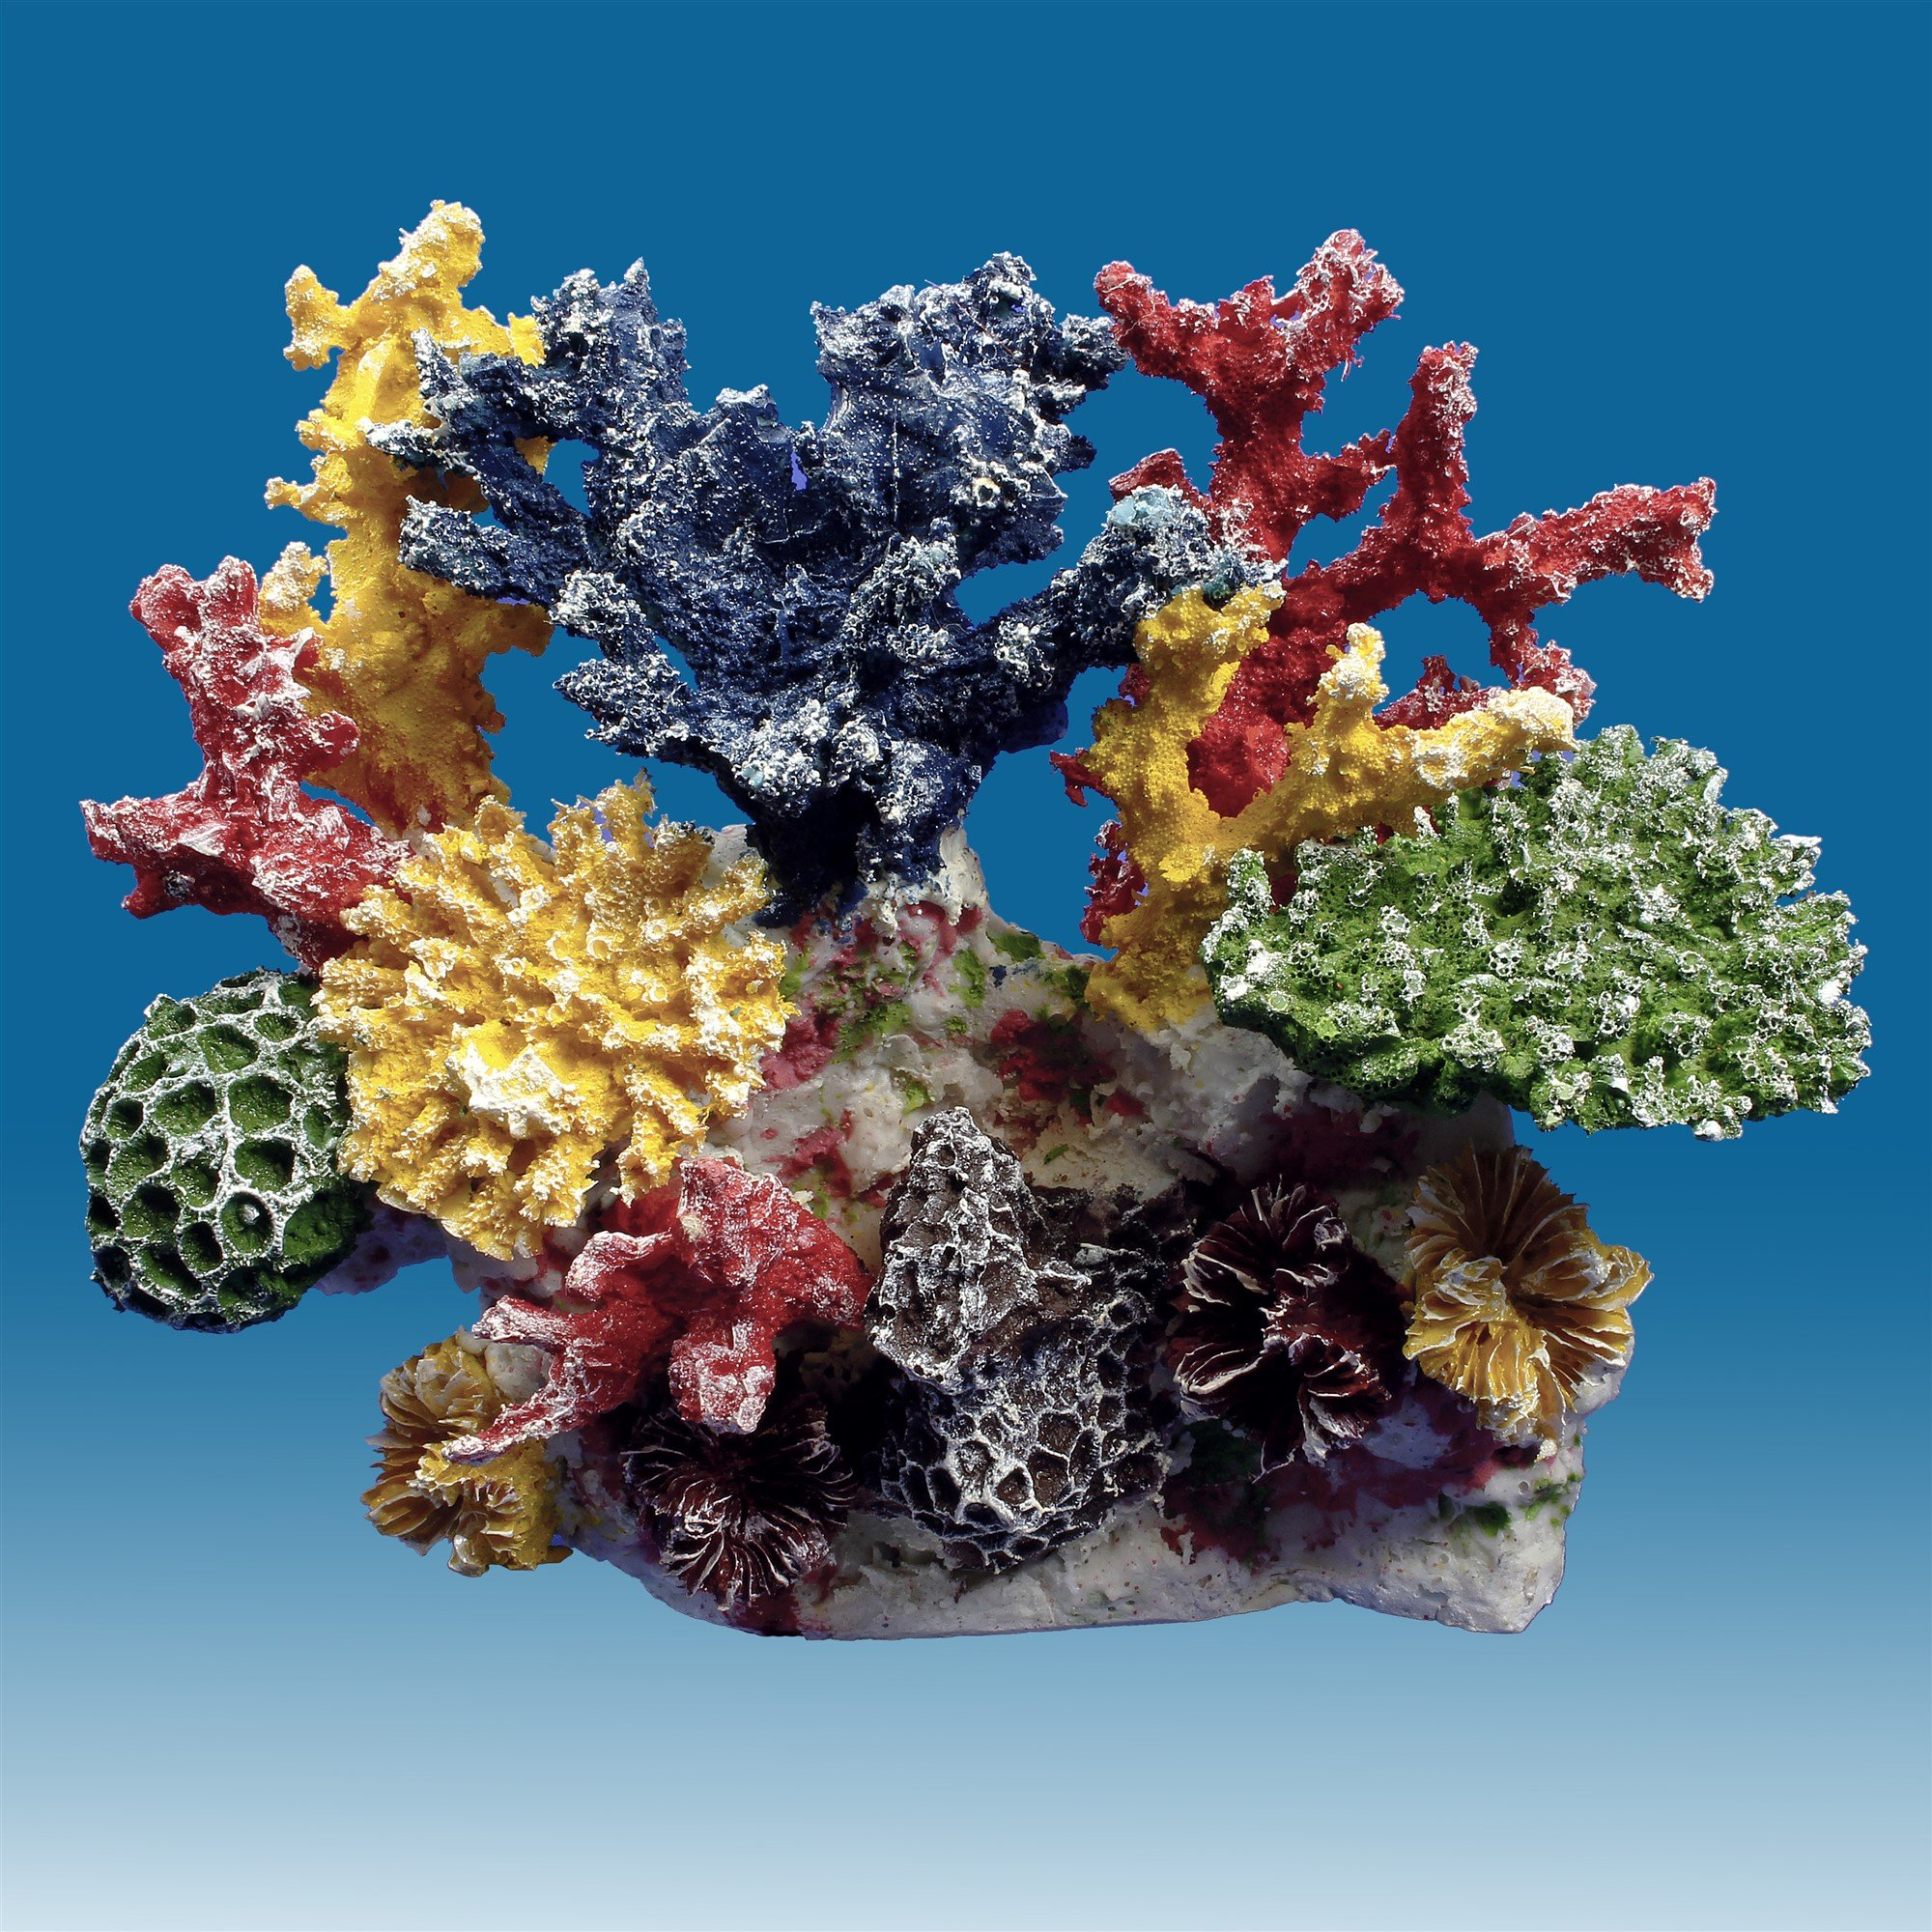 Instant Reef DM036 Artificial Coral Inserts Decor, Fake Coral Reef Decorations for Colorful Freshwater Fish Aquariums, Marine and Saltwater Fish Tanks by Instant Reef